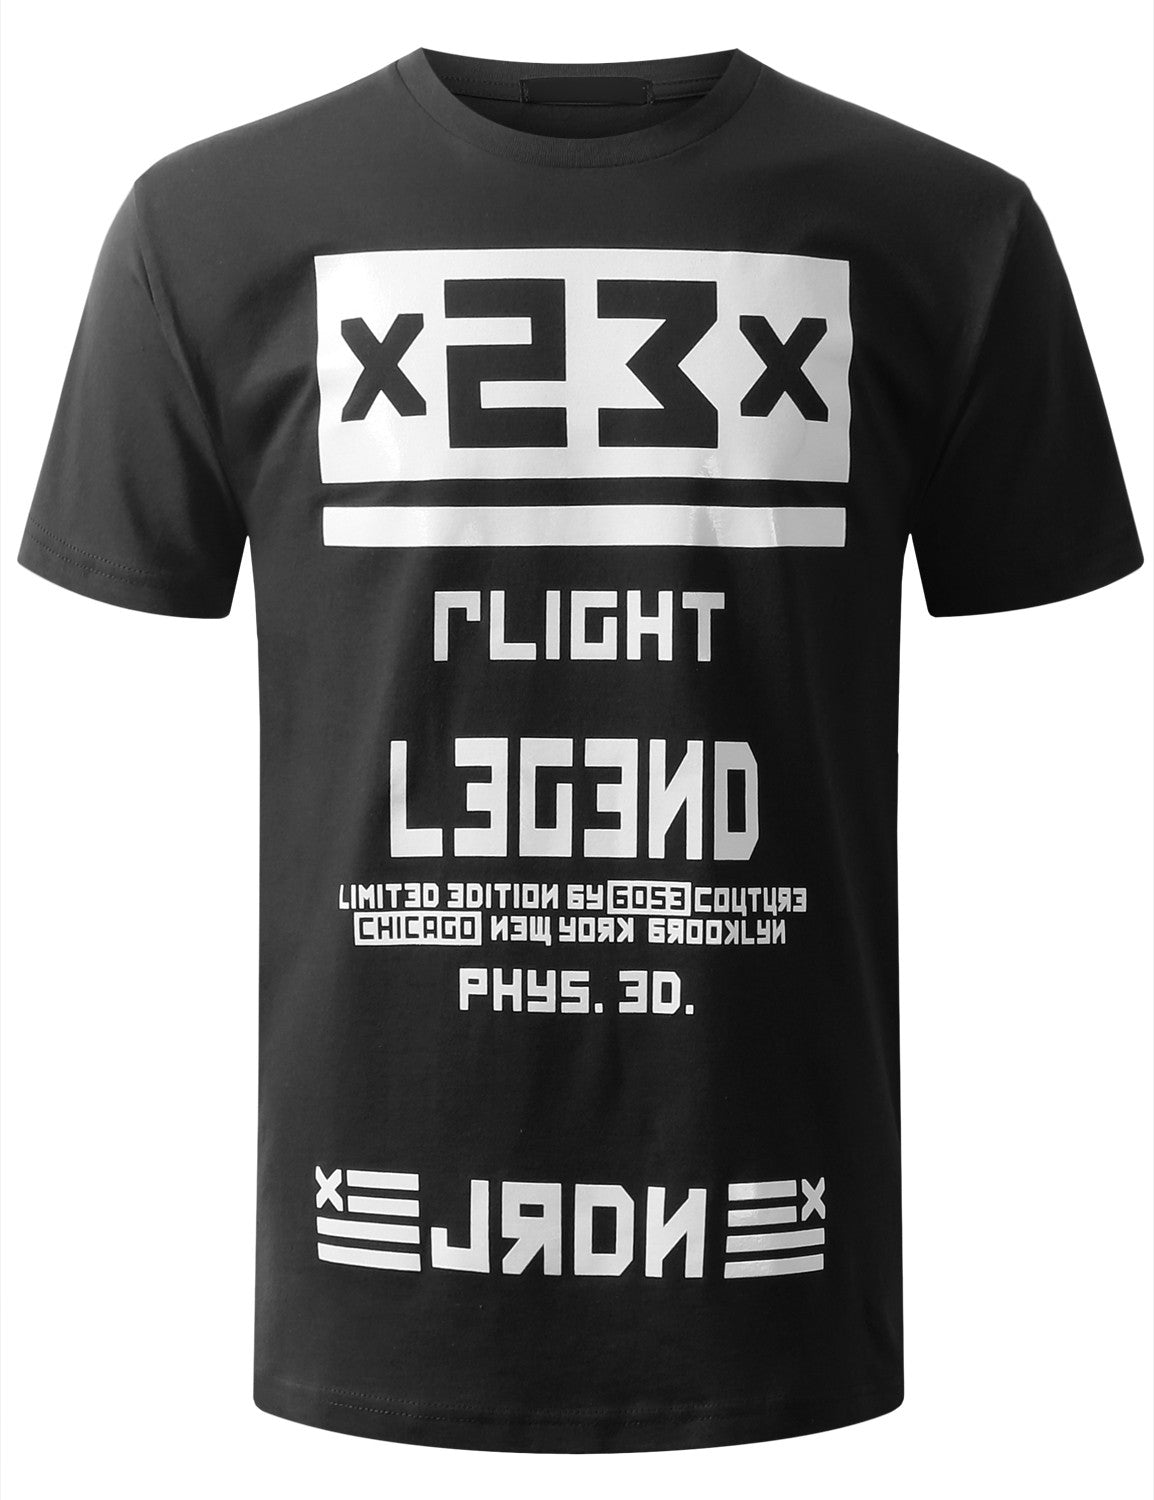 BLACK URBANCREWS Legend Printed Crewneck Tshirts